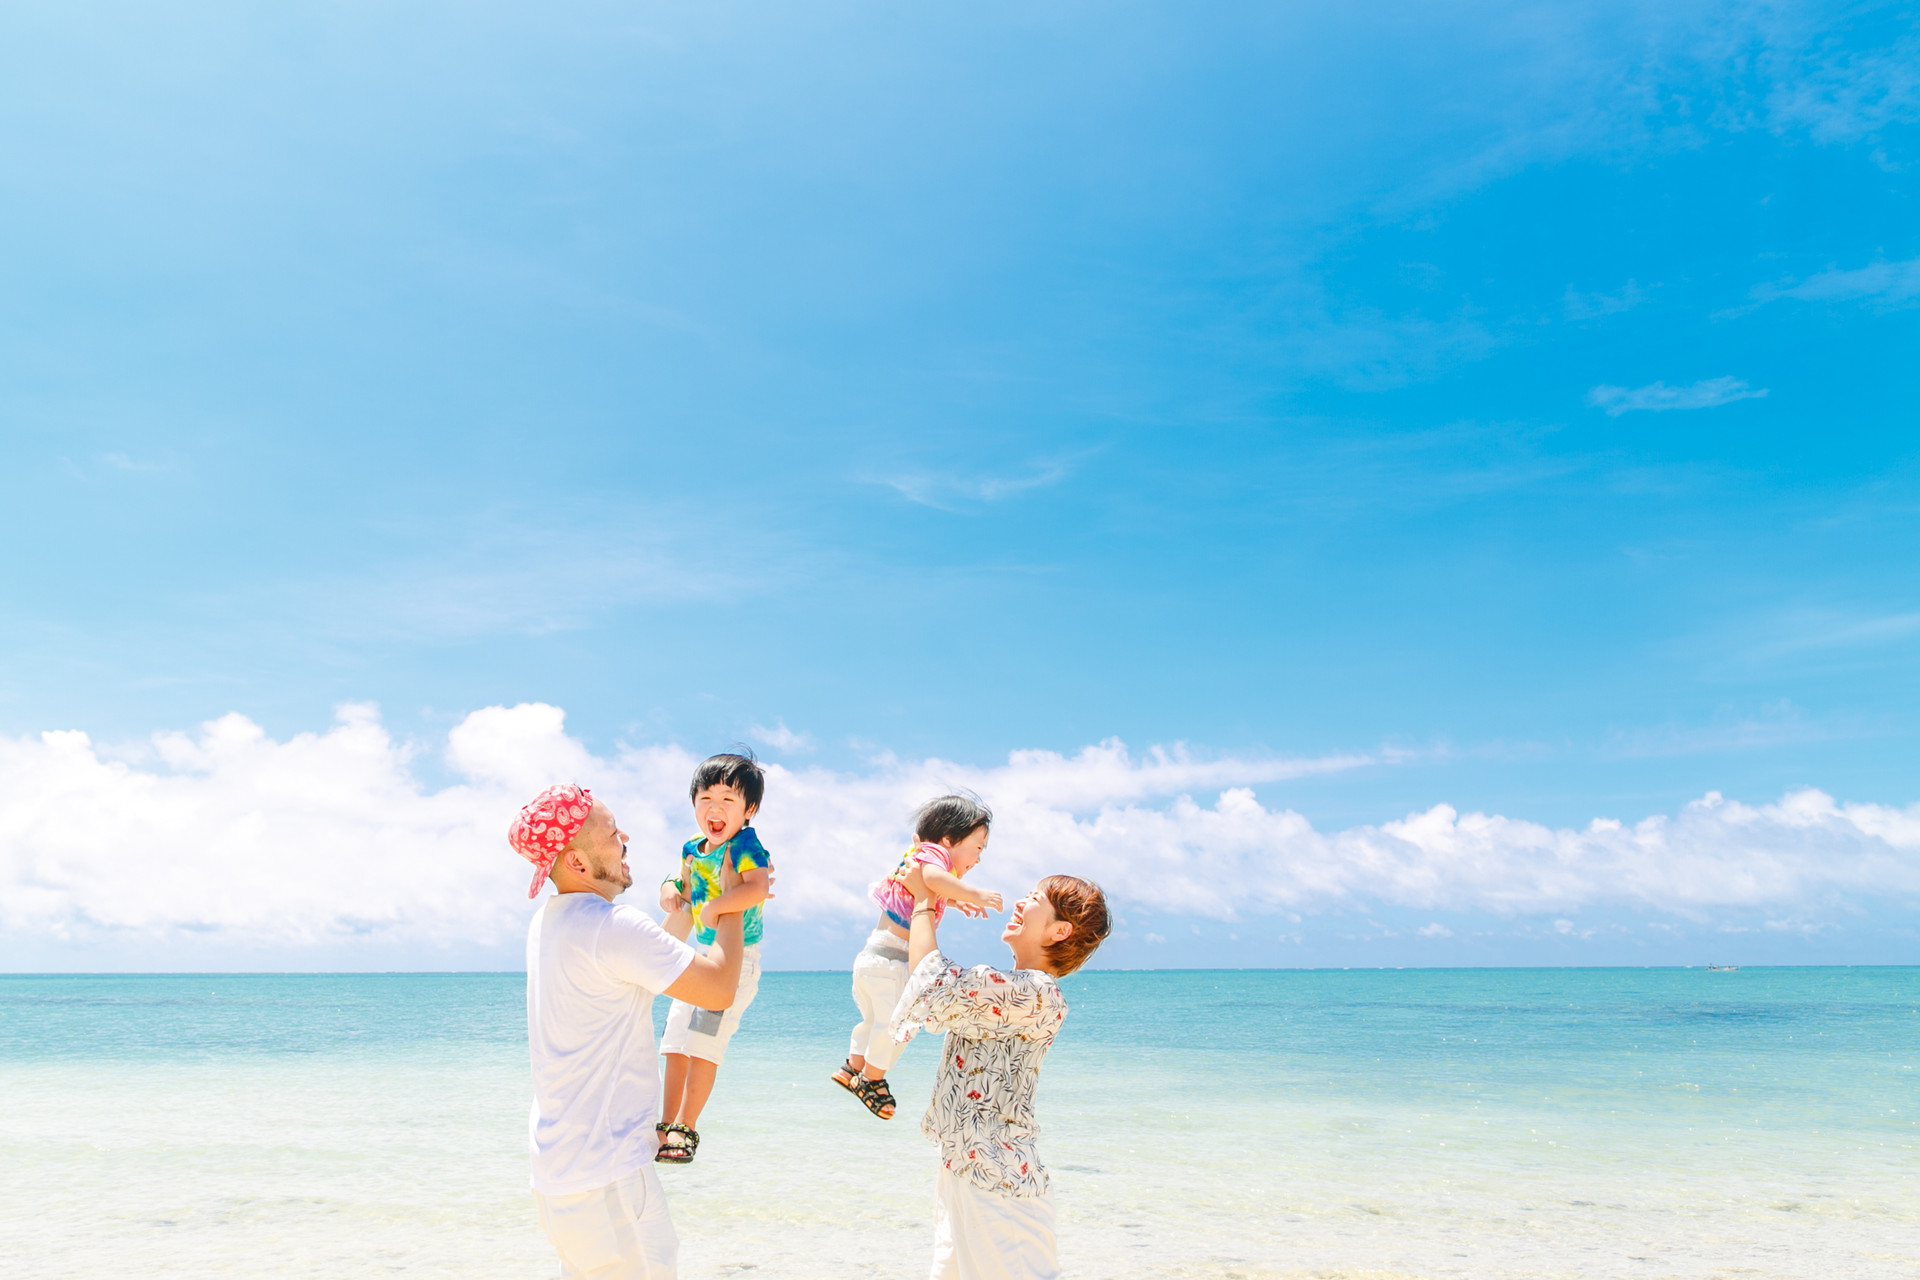 Family photo in okinawa